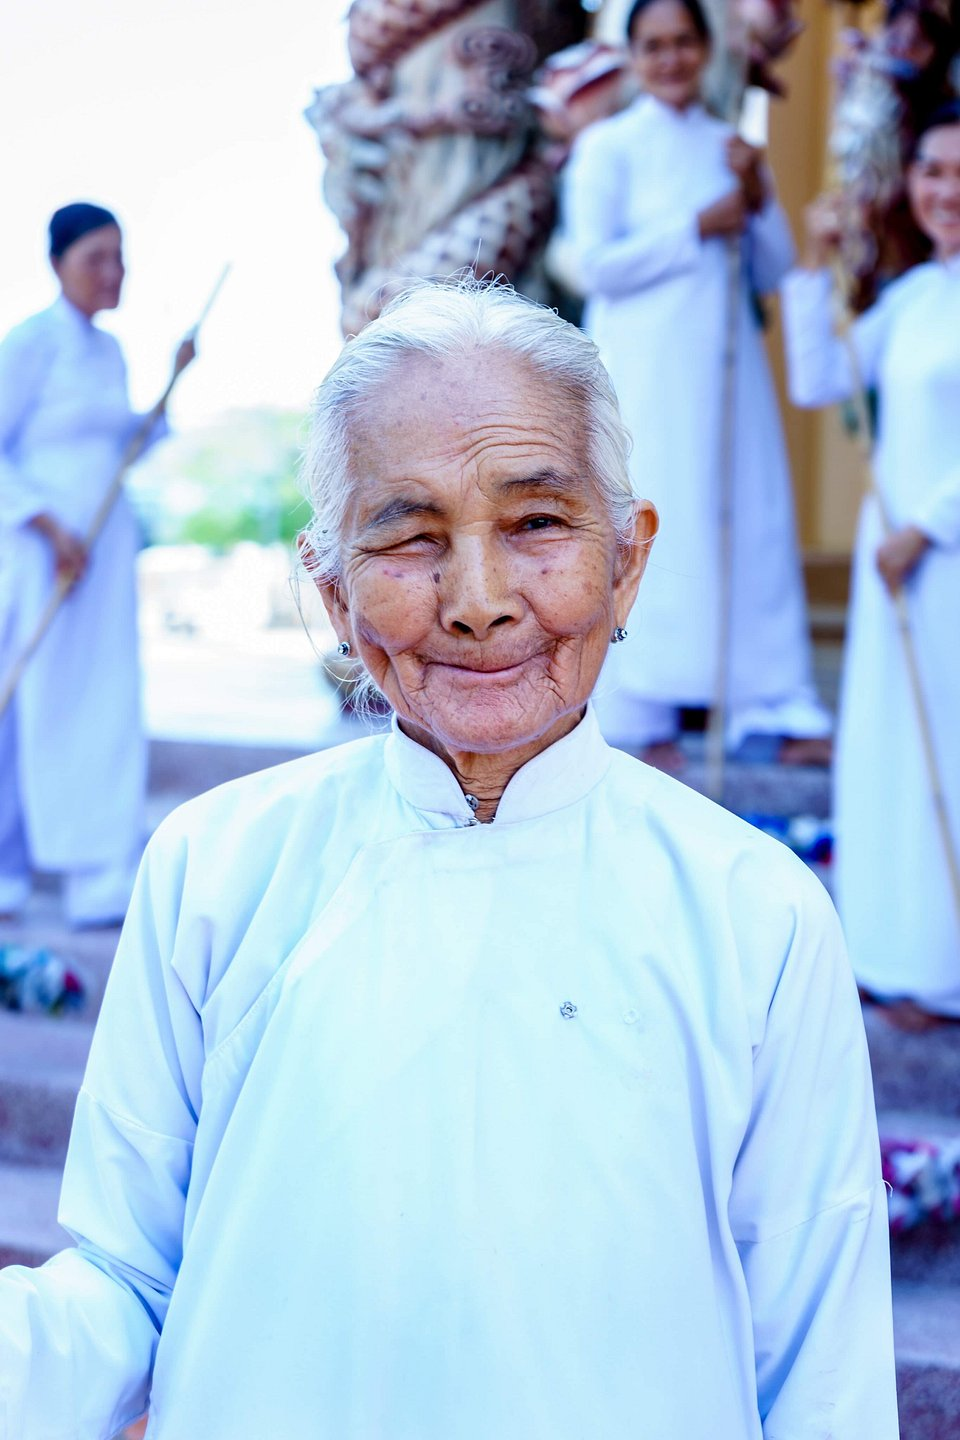 The photographer spotted this grandmother during a visit to the Tây Ninh temple (Andy Lam/AGORA images)